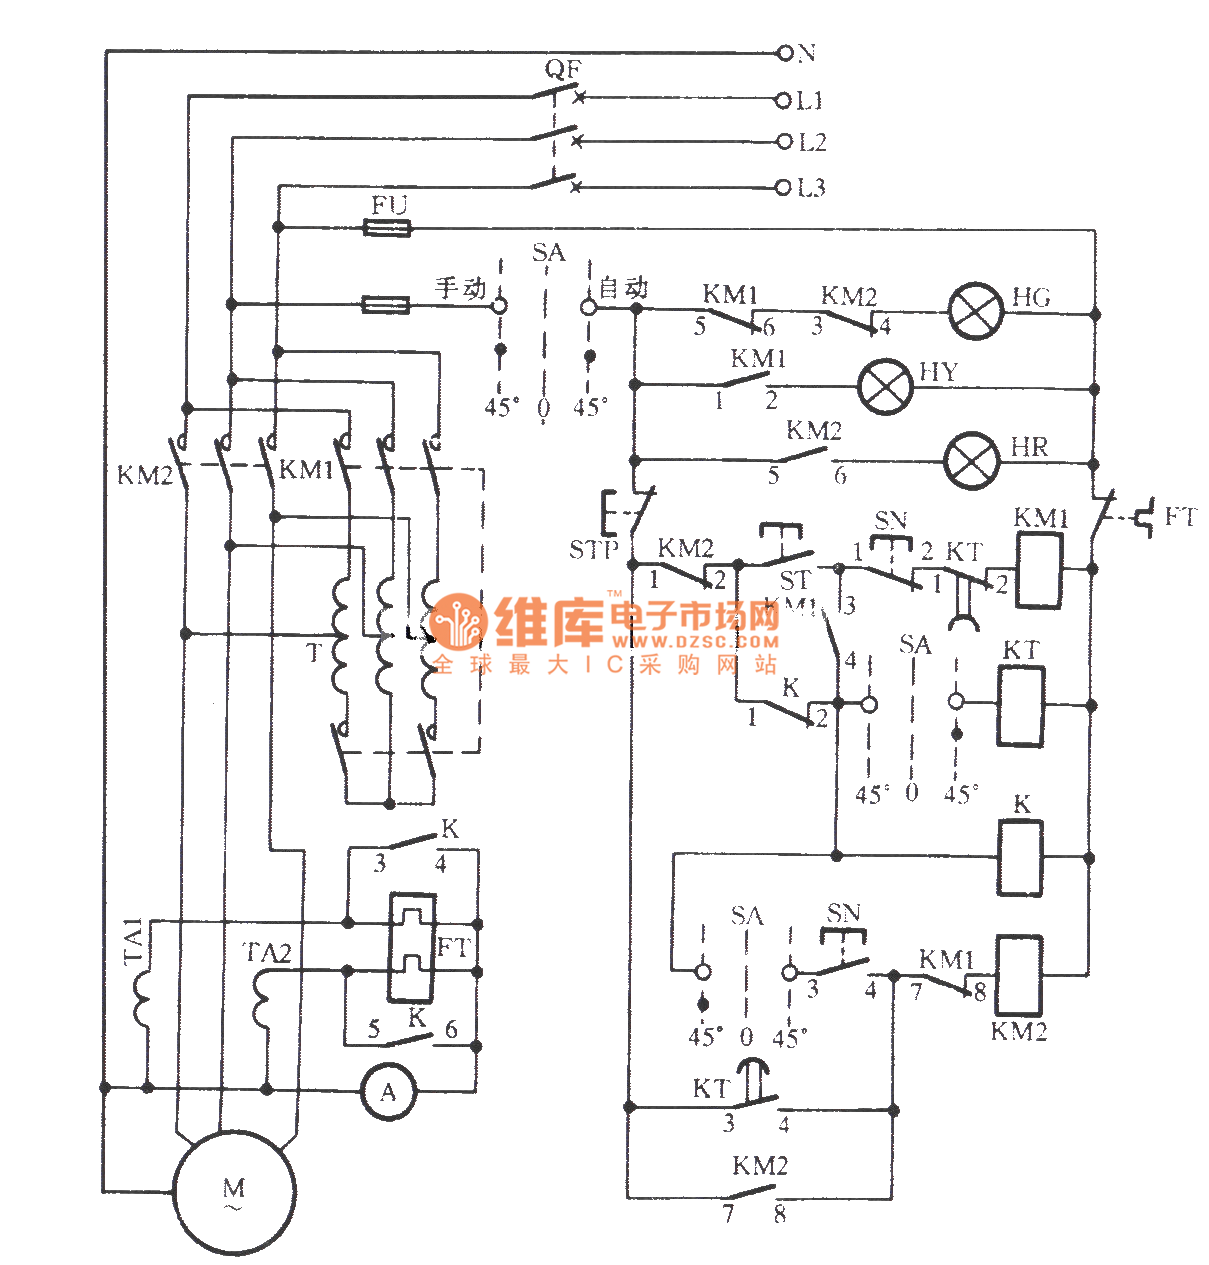 Light Sensor Switch Circuit likewise Asus Motherboard Connection Diagram together with Victron Multiplus Inverter Kit With Solar Controller as well 911 electrical diagrams likewise Mc2100 Treadmill Motor Control Circuit Within Wiring Diagram. on electrical control wiring diagrams